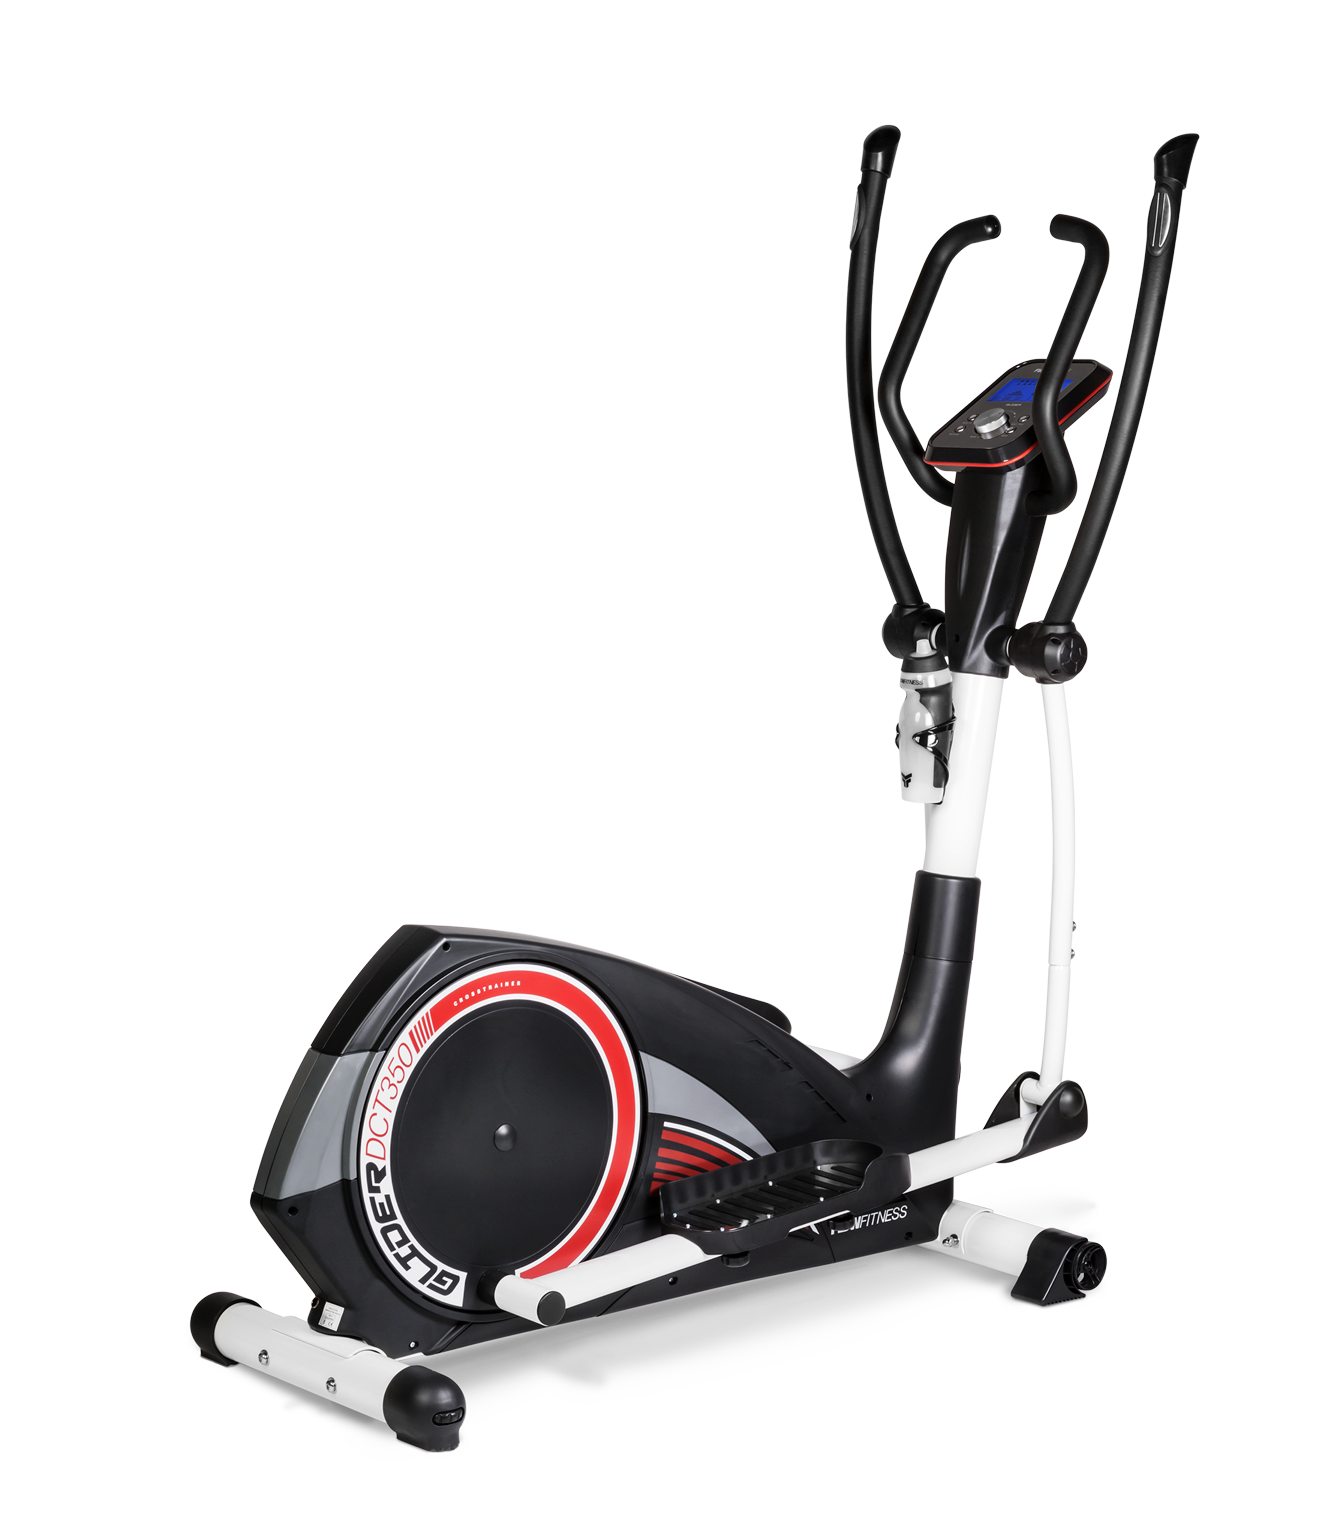 Flow Fitness DCT350i Crosstrainer